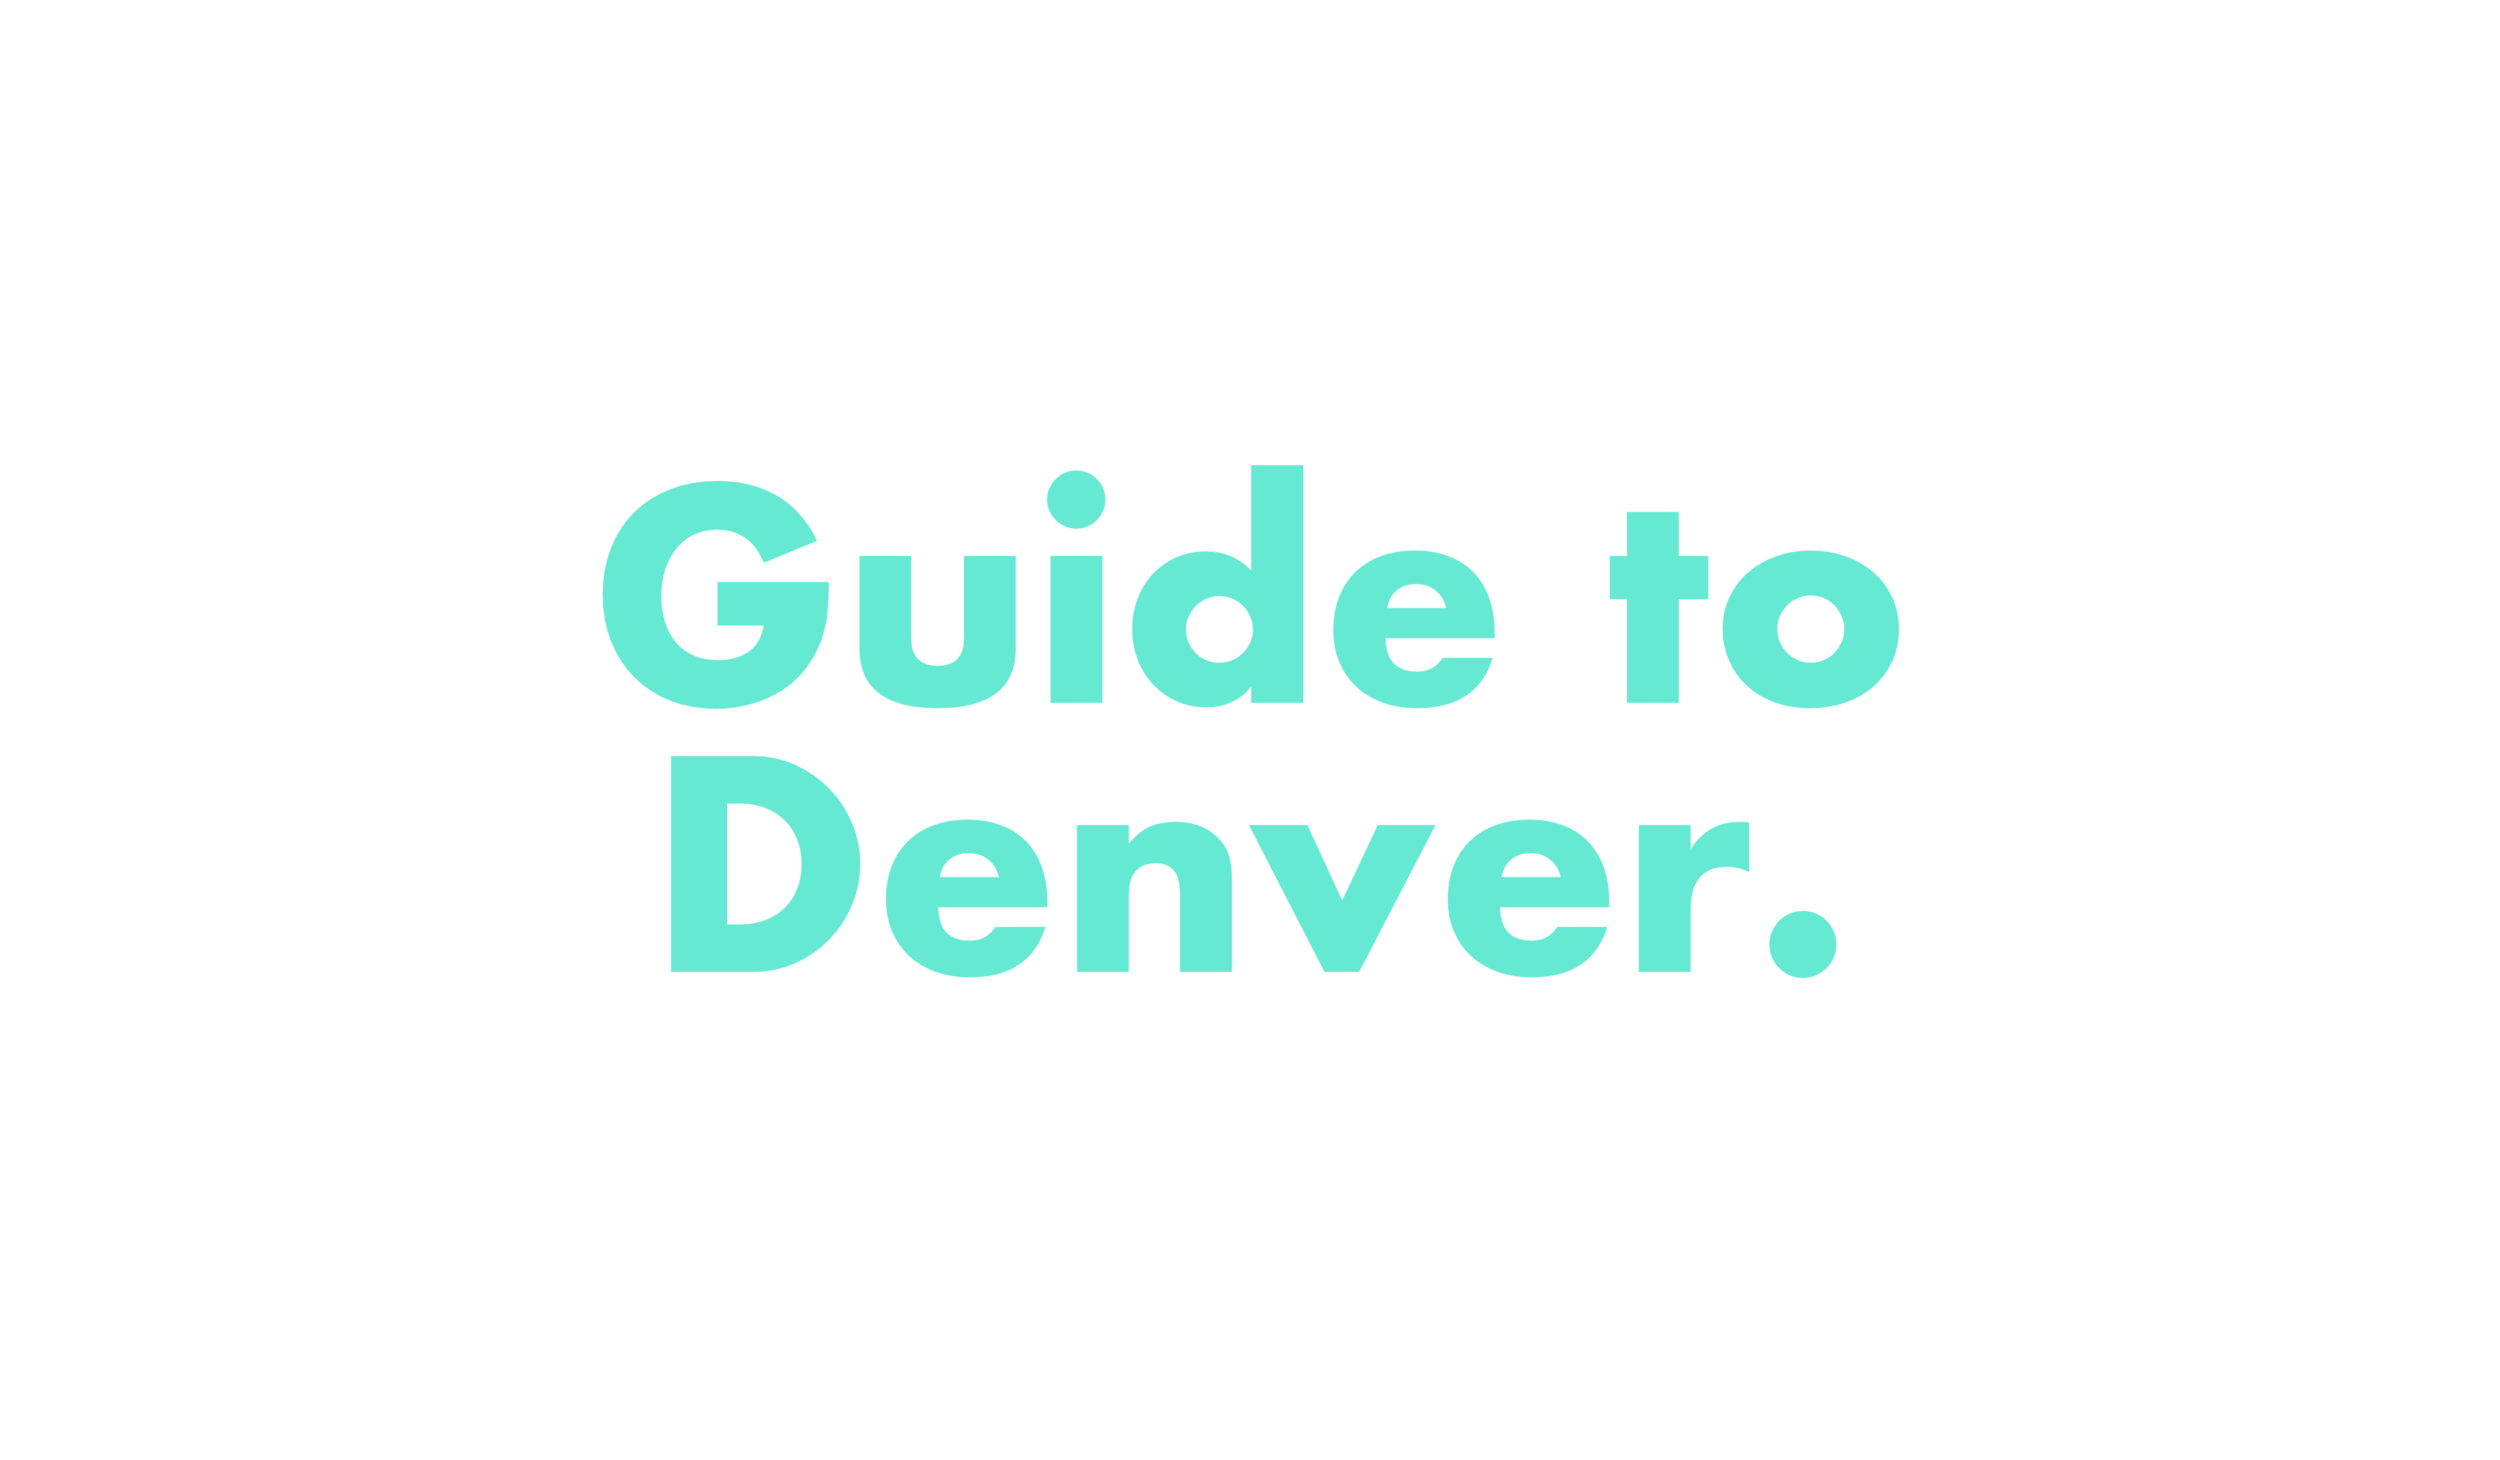 guide_to_denver.png